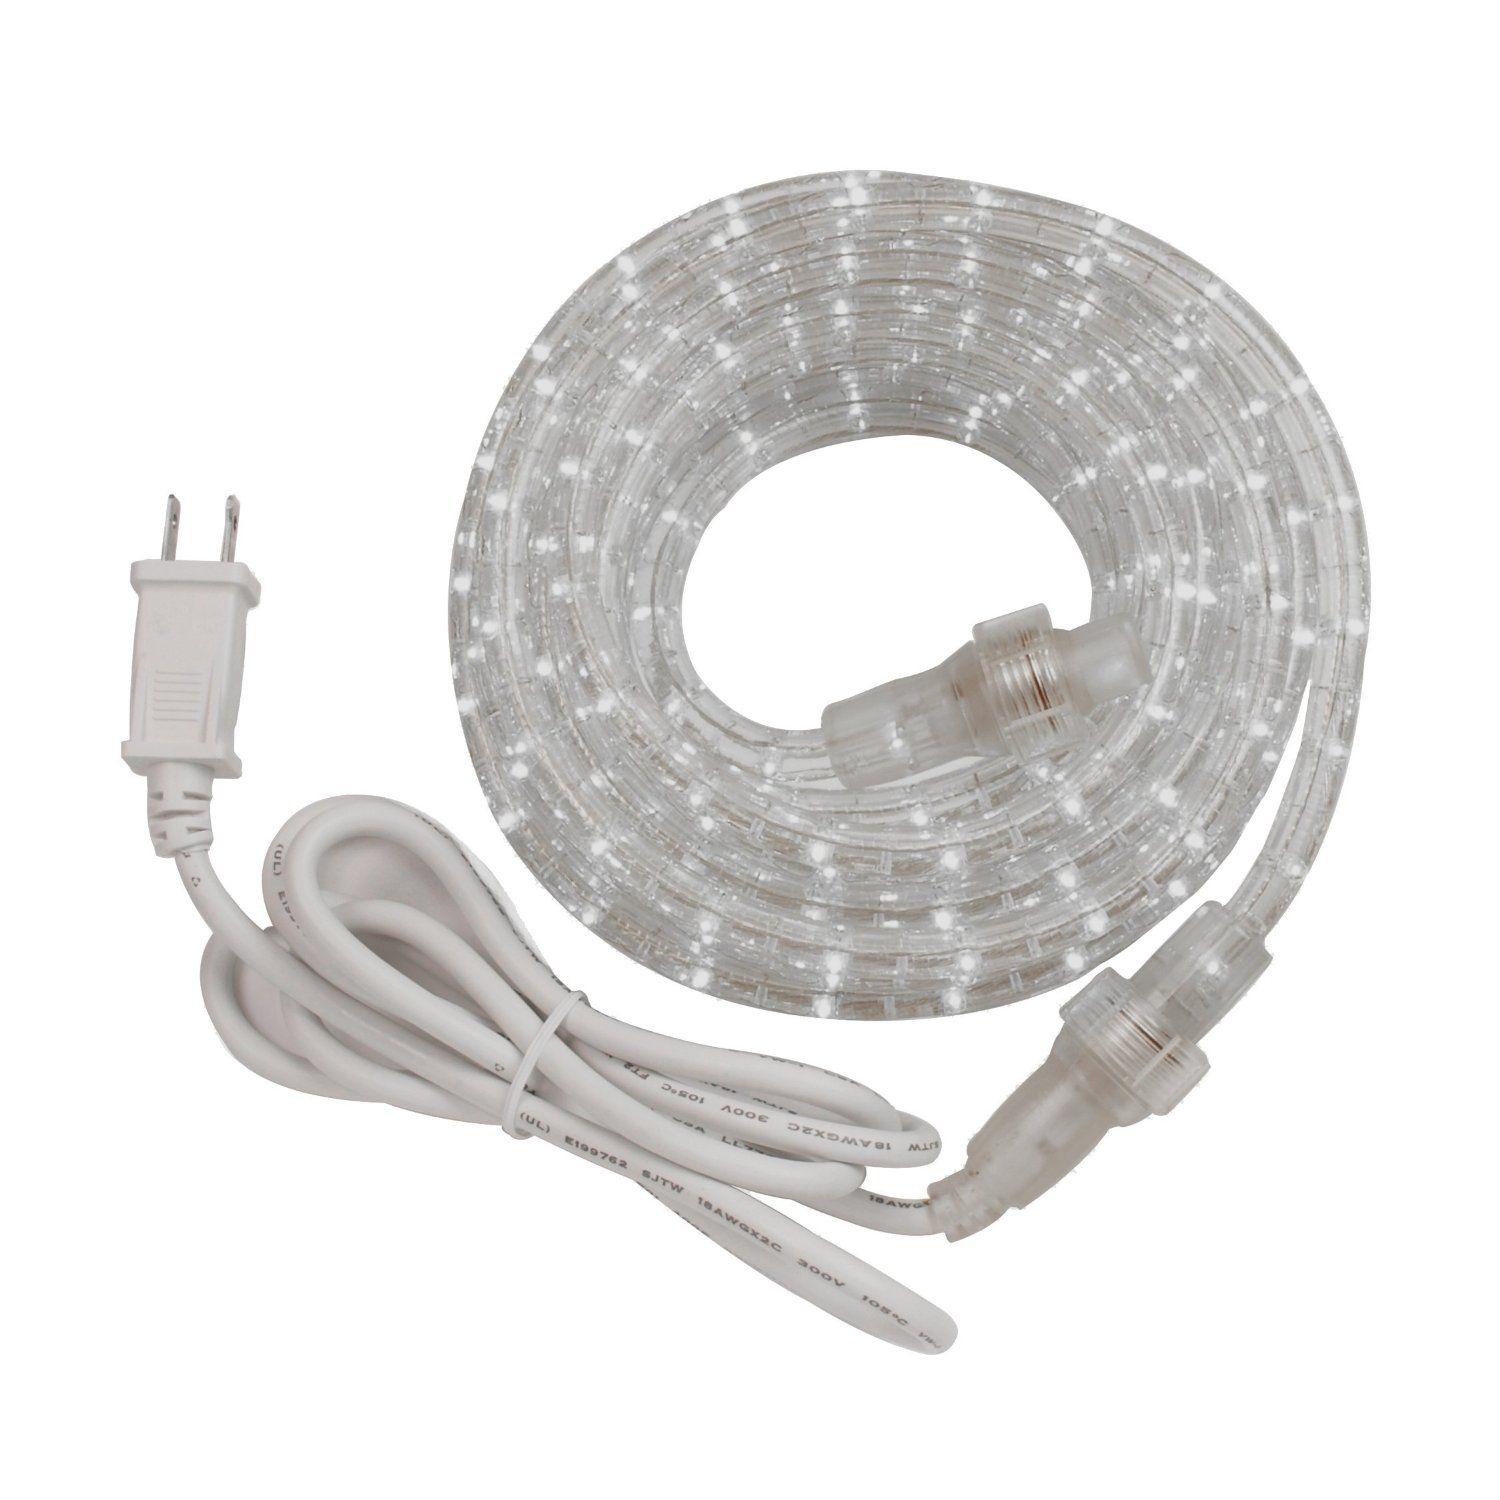 Amazon westek rw48bcc 100w clear 48 feet white rope light kit amertac incandescent rope lights feature flexible heavy duty uv inhibiting pvc tubing that resists yellowing and cracking simple to connect additional aloadofball Images